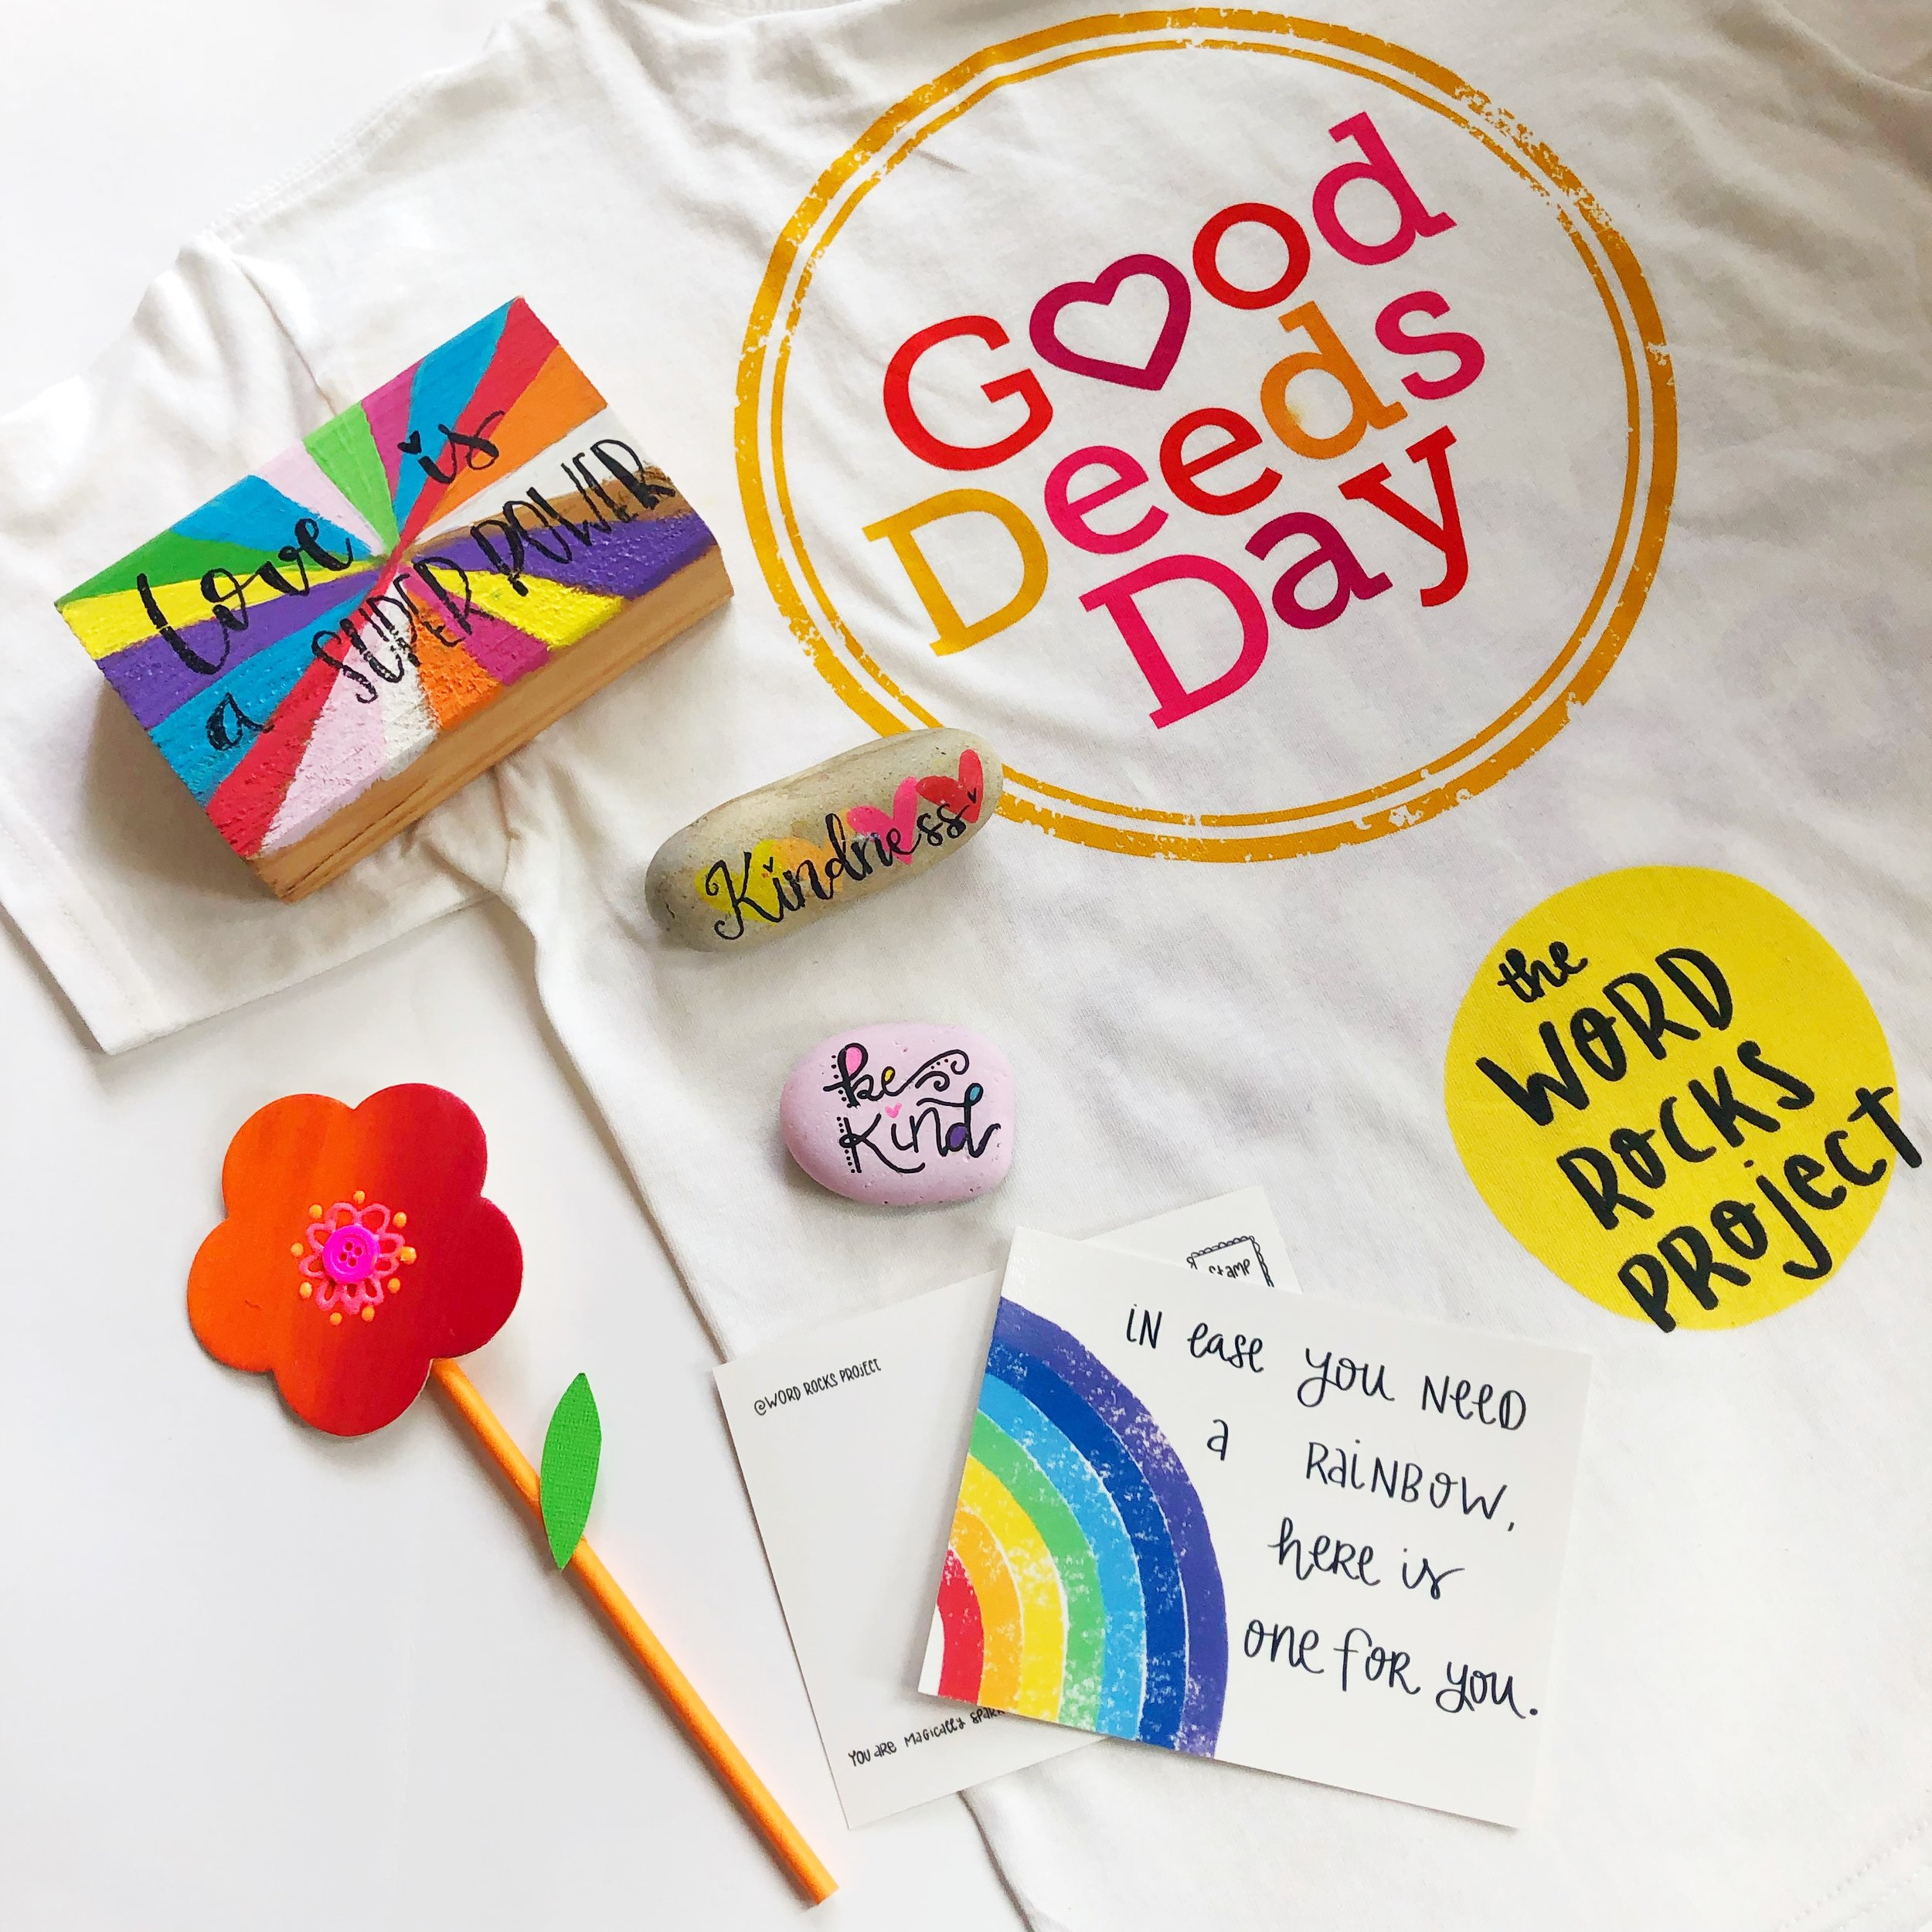 Wanna keep your kids busy with a good purpose?  We will be celebrating Good Deeds Day with an amazing class, April, 6th!  GDD is a global day that unites people from 100 countries to do good deeds for the benefit of others and the planet, and your kids can be part of it this year celebration! As one of their Ambassadors, I will talk to kids about how my kindness projects had spread all over the world and how they bring joy and support to so many!  Bring them to improve their crafting skills while learning how to make kindness famous through random acts of art.   BONUS : They will all receive a Good Deeds Day t-shirt!  Bring your kid and let's raise a generation that will be able to make kindness famous!  Ages 5-11  $22/kid  Buy tickets  HERE.   Questions? wordrocks.me@gmail.com